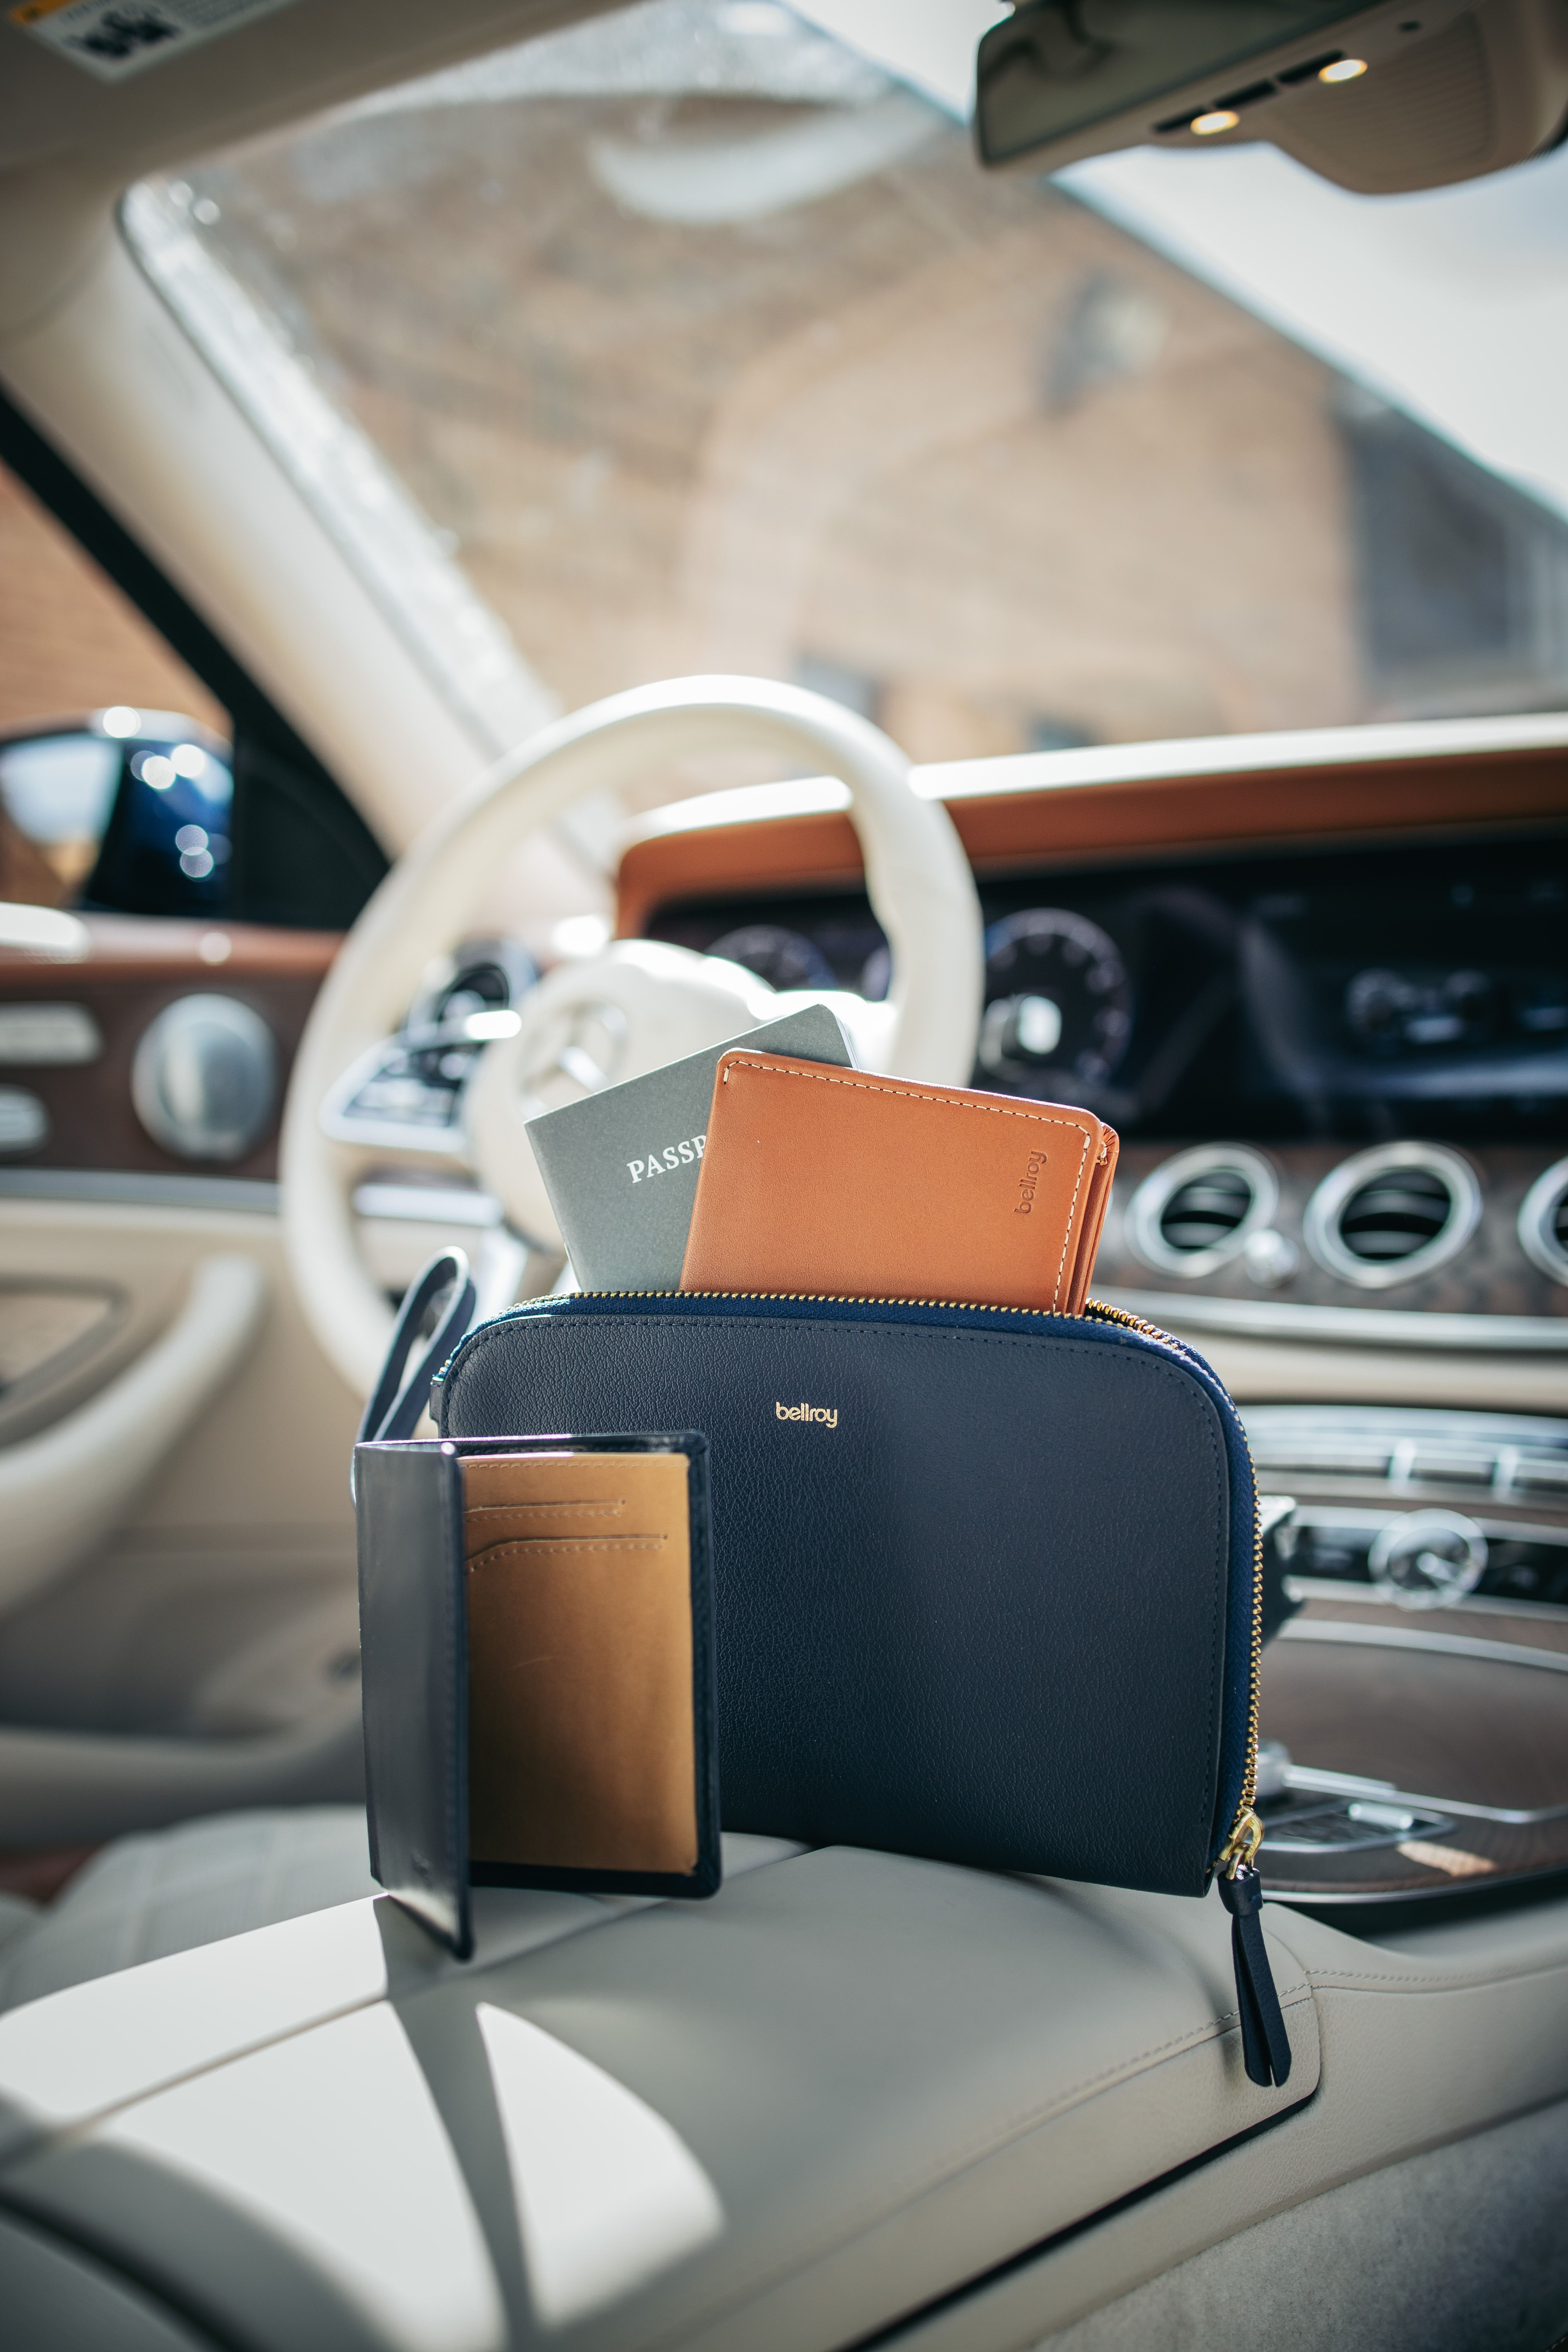 dadeb4a822b9e 40 Cool Gifts for Car Lovers for 2019 - Best Presents for Car Guys